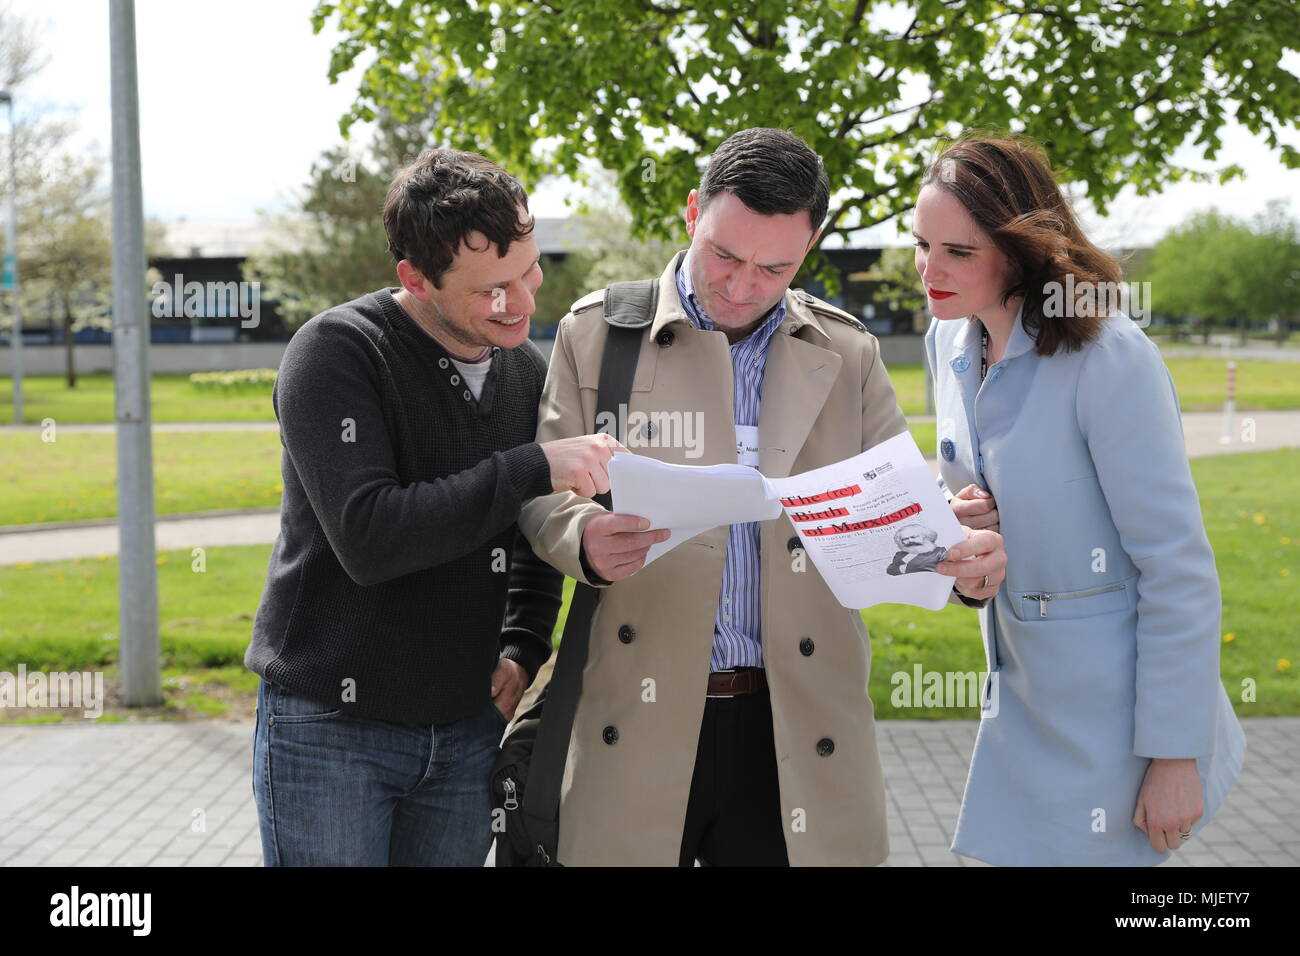 Dublin. 5th May, 2018. People study a program before attending a seminar in Maynooth, east Ireland, May 4, 2018. A two-day international seminar to mark the 200th birthday of Karl Marx opened at Maynooth University in Ireland's eastern city of Maynooth on Friday. Credit: Xinhua/Alamy Live News - Stock Image